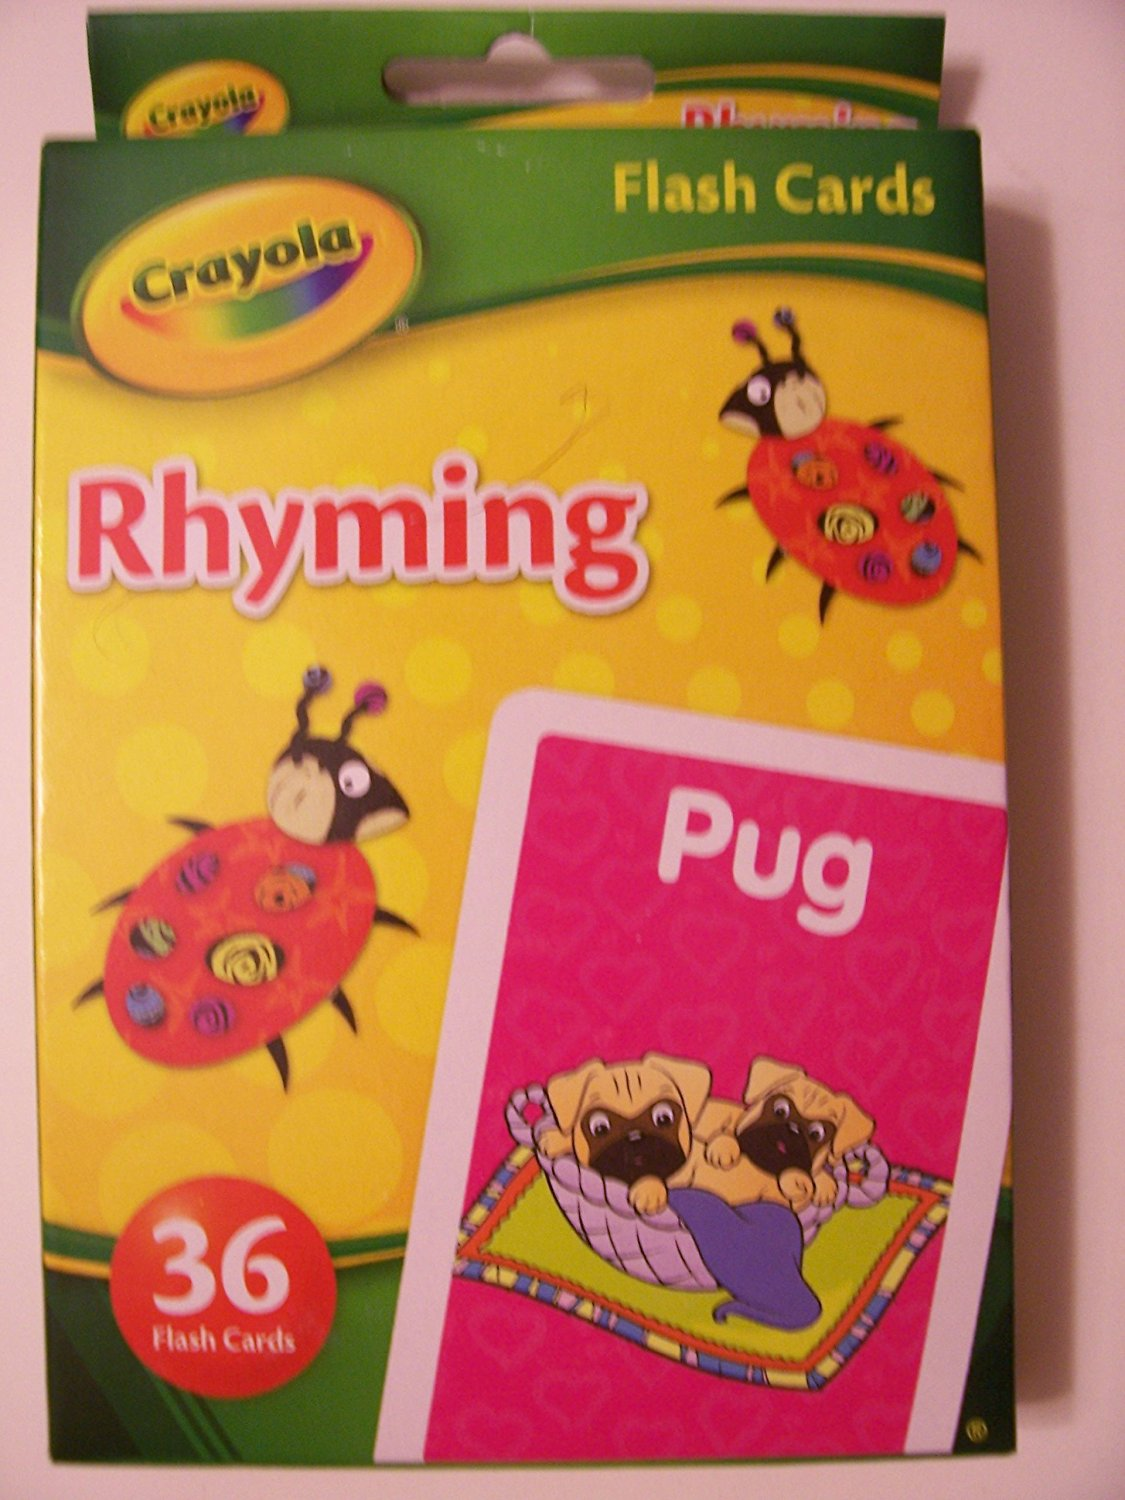 Crayola Educational Flash Cards ~ Rhyming (36 Flash Cards; 2012)